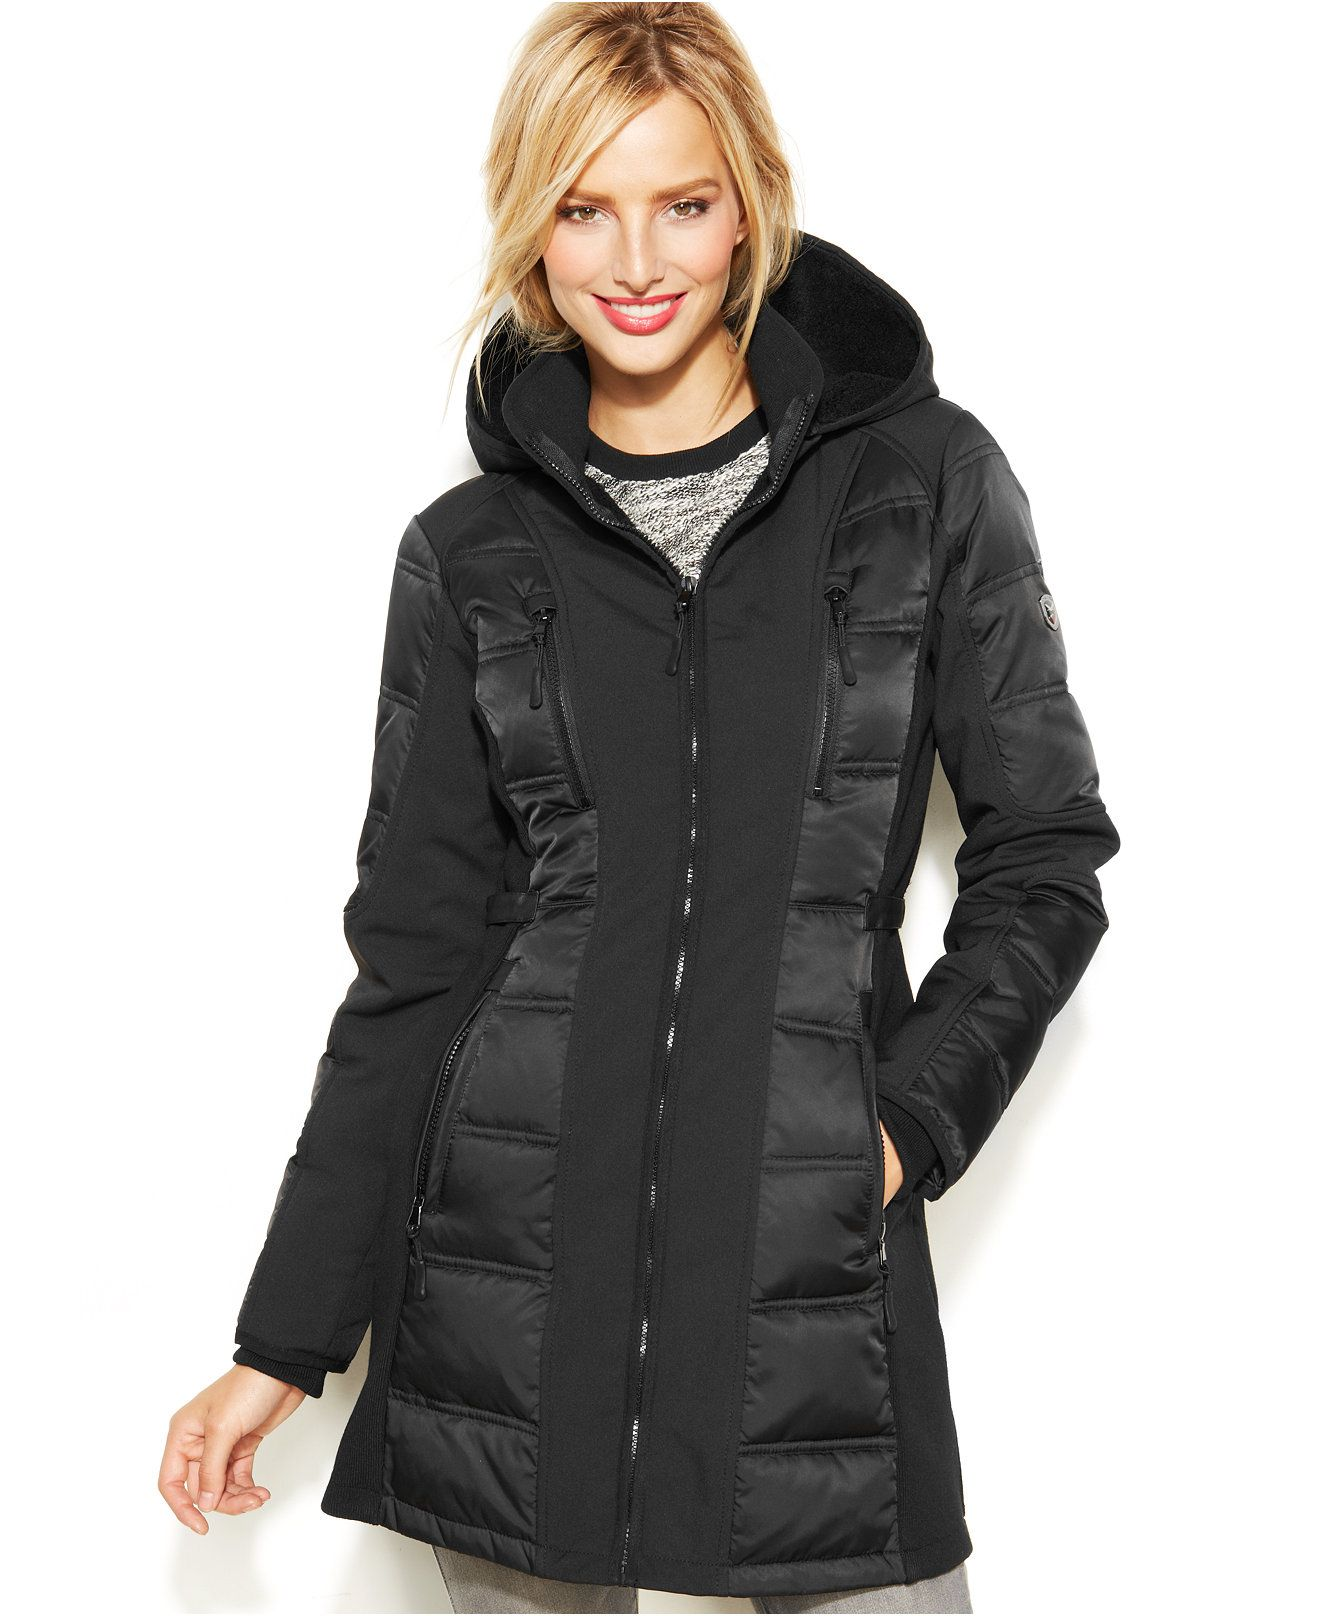 1 Madison Expedition Hooded Scuba Panel Puffer Coat Coats Women Macy S Puffer Coat Coat Coats For Women [ 1616 x 1320 Pixel ]